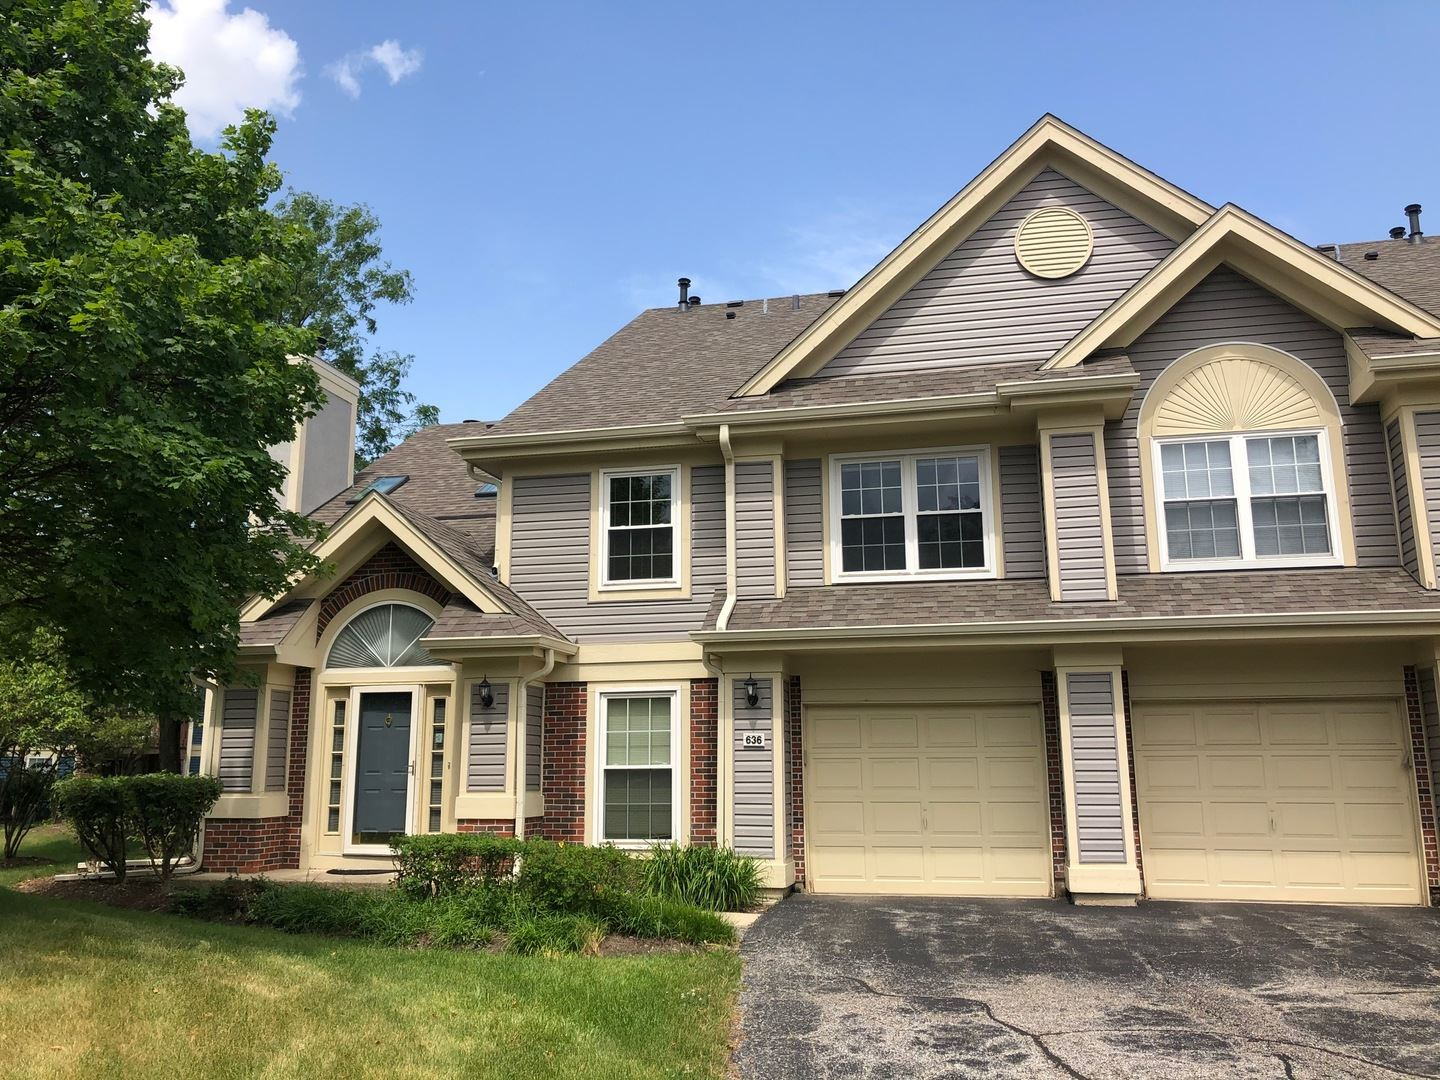 636 Stone Brook Court, Elk Grove Village, IL 60007 - #: 10764310